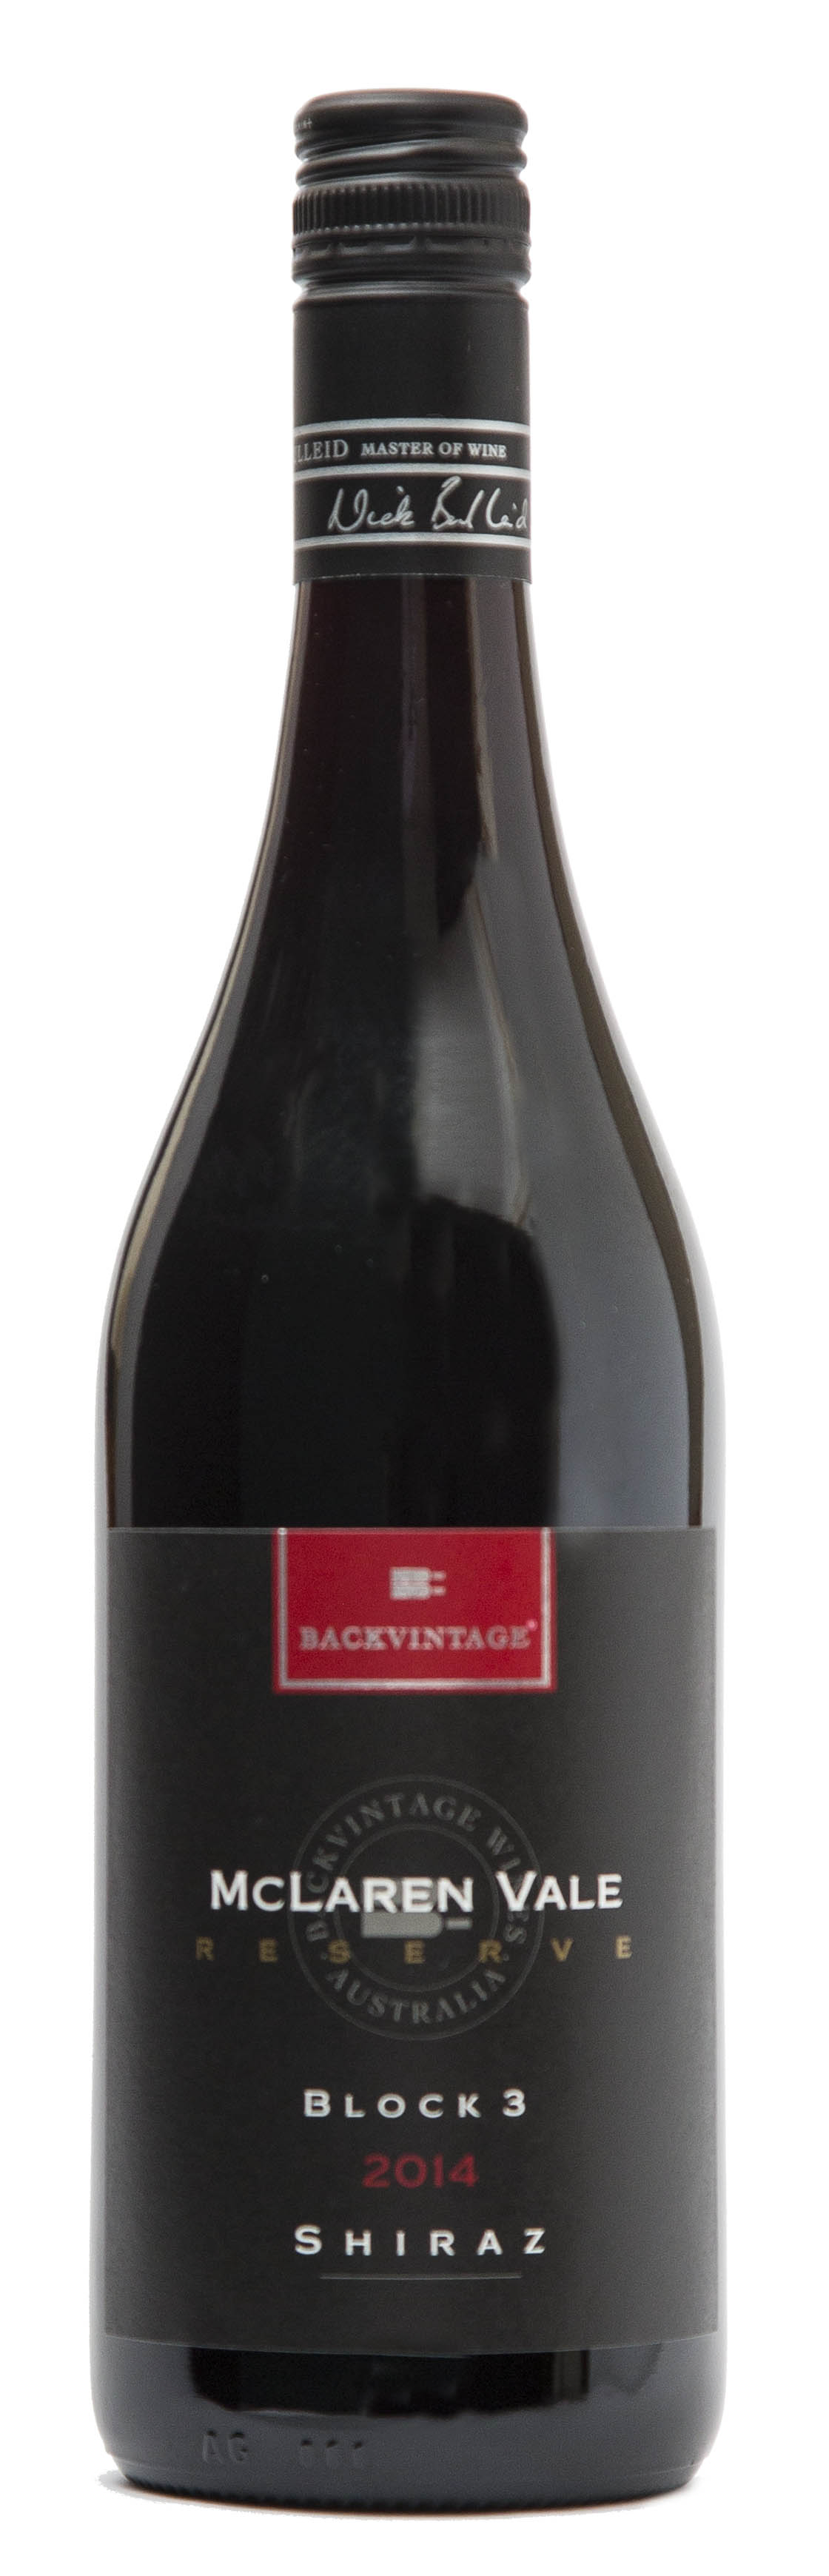 "2014 BackVintage Reserve ""Block 3"" McLaren Vale Shiraz"